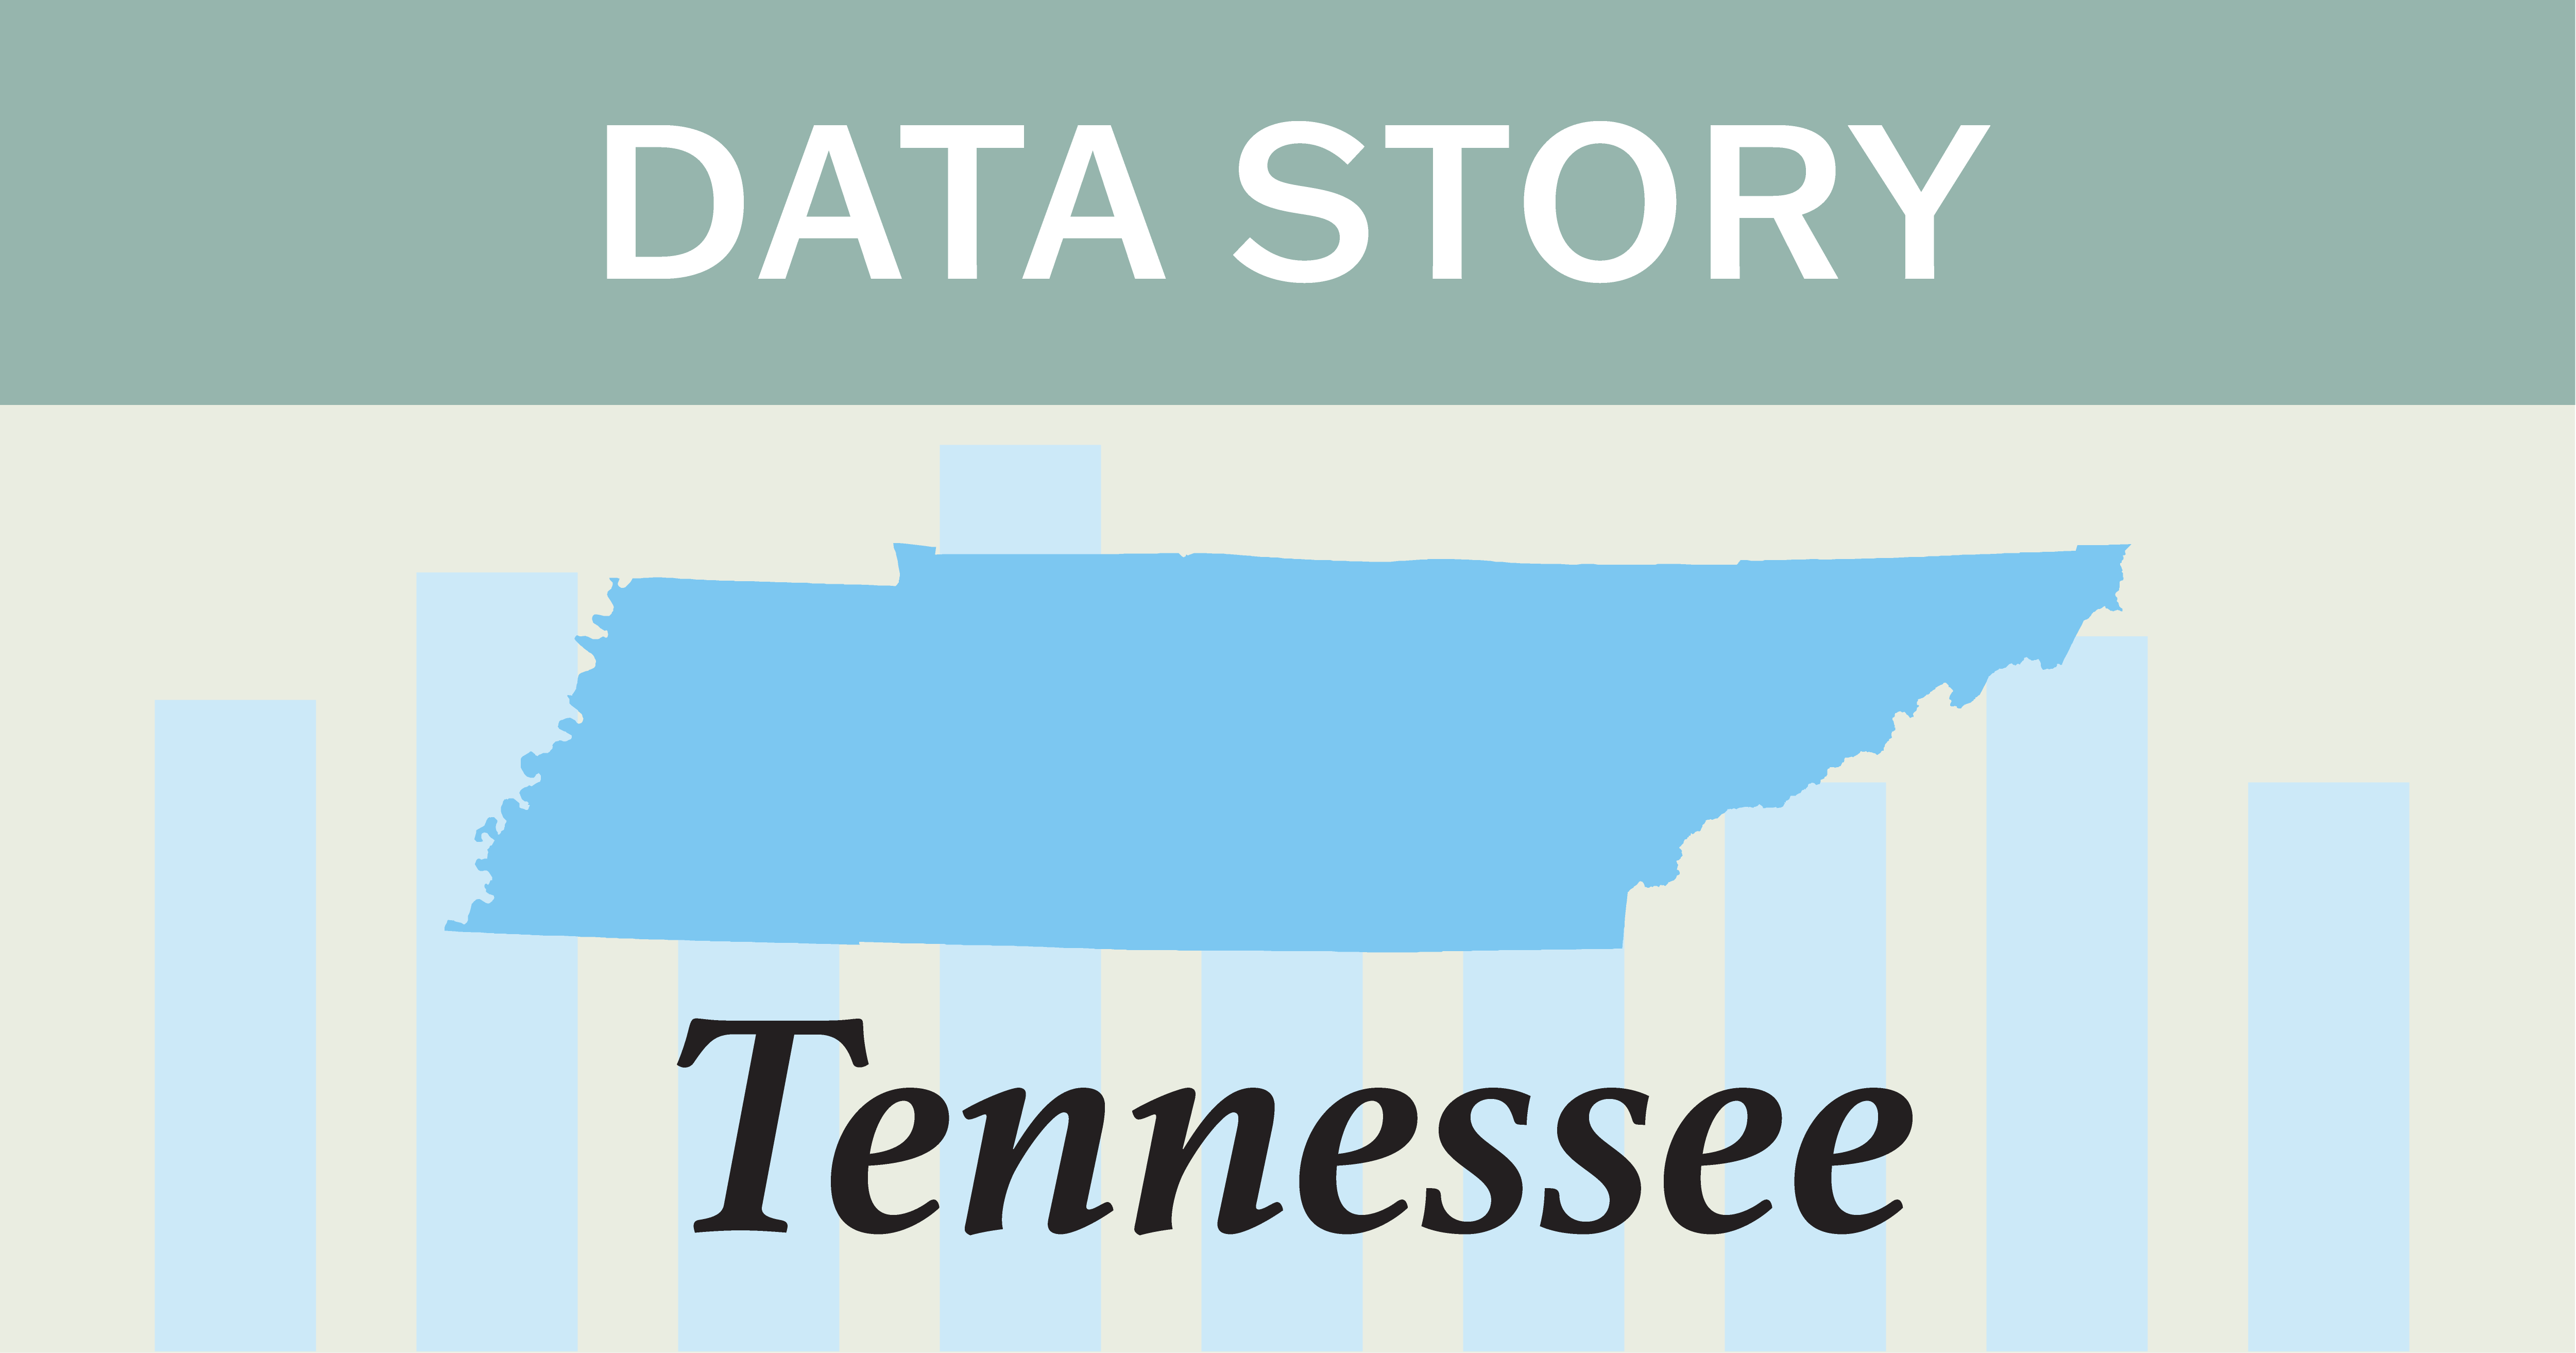 Outline of the state of Tennessee.